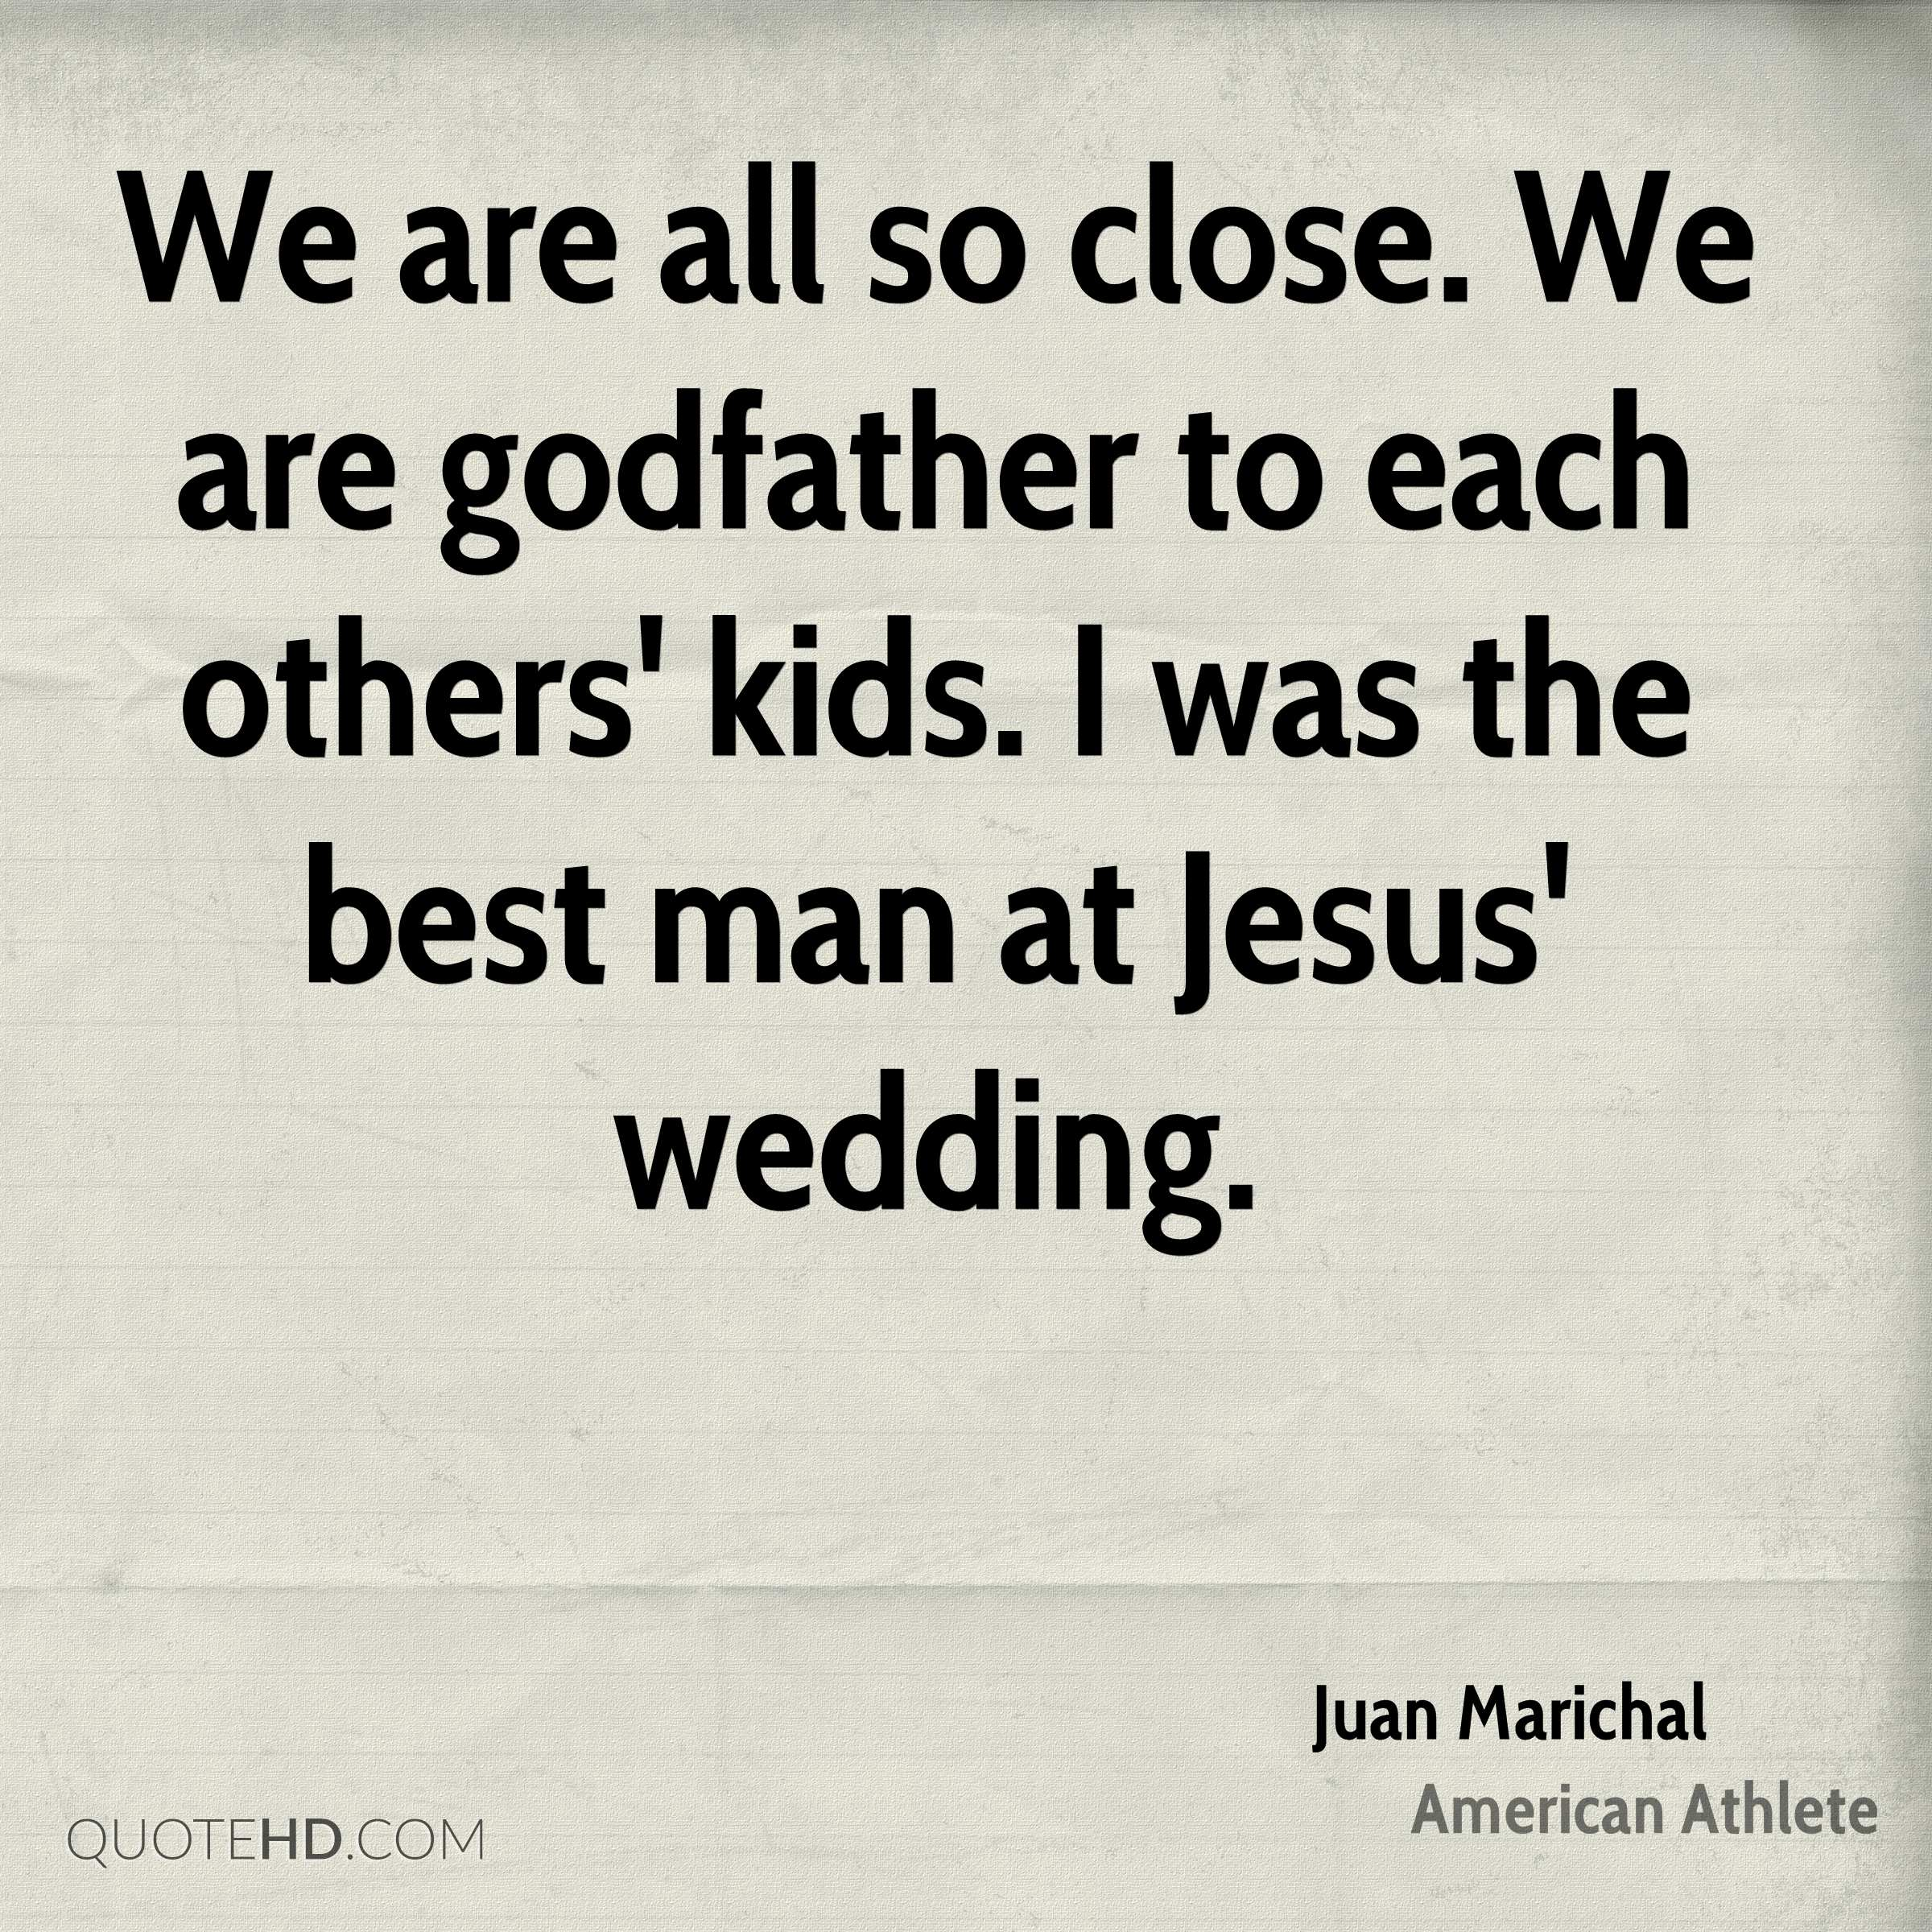 We are all so close. We are godfather to each others' kids. I was the best man at Jesus' wedding.